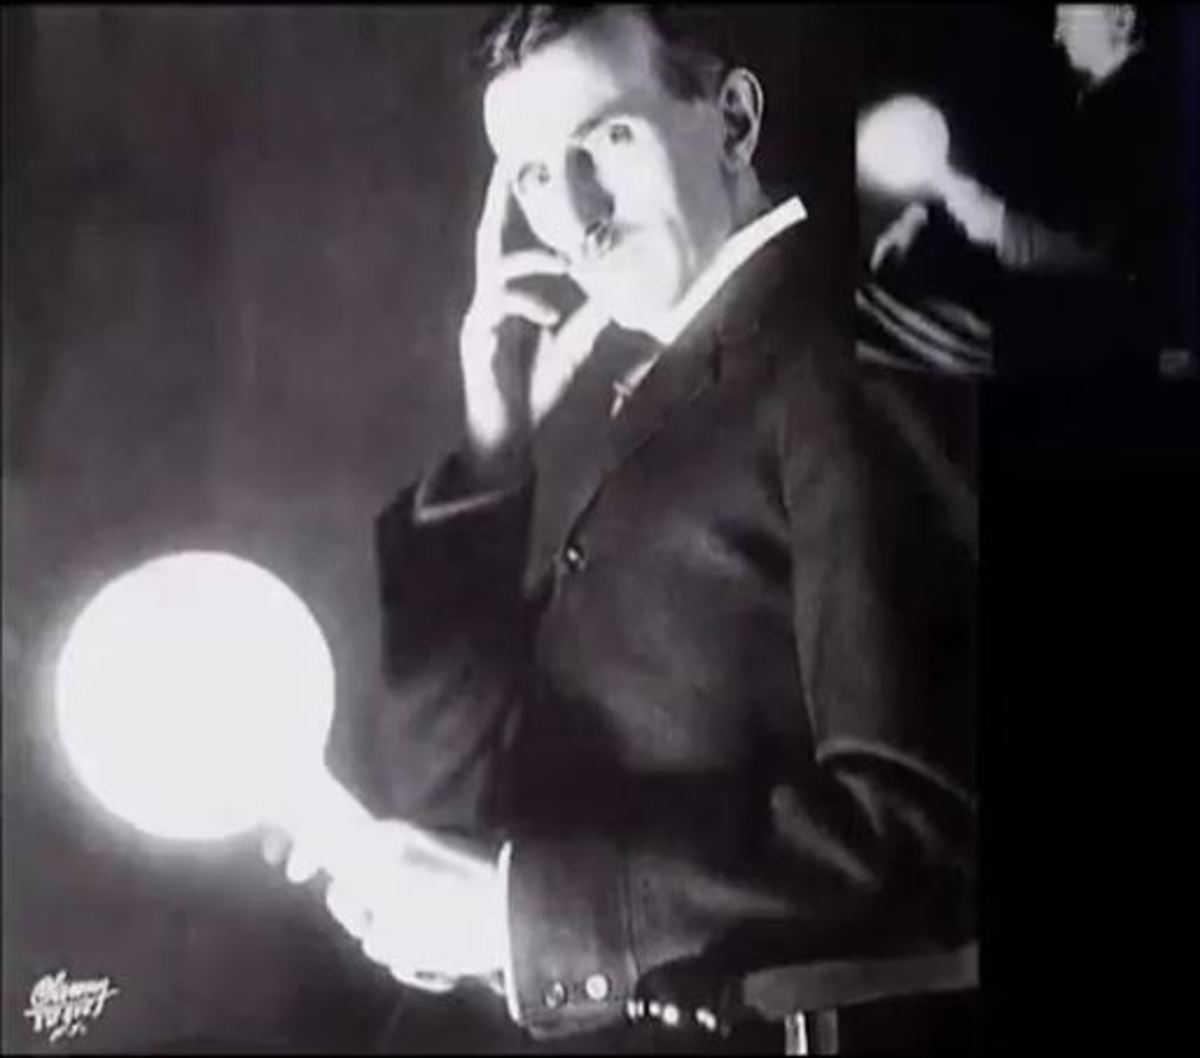 Nikolai Tesla transmitting AC current through his body illuminating a light bulb.